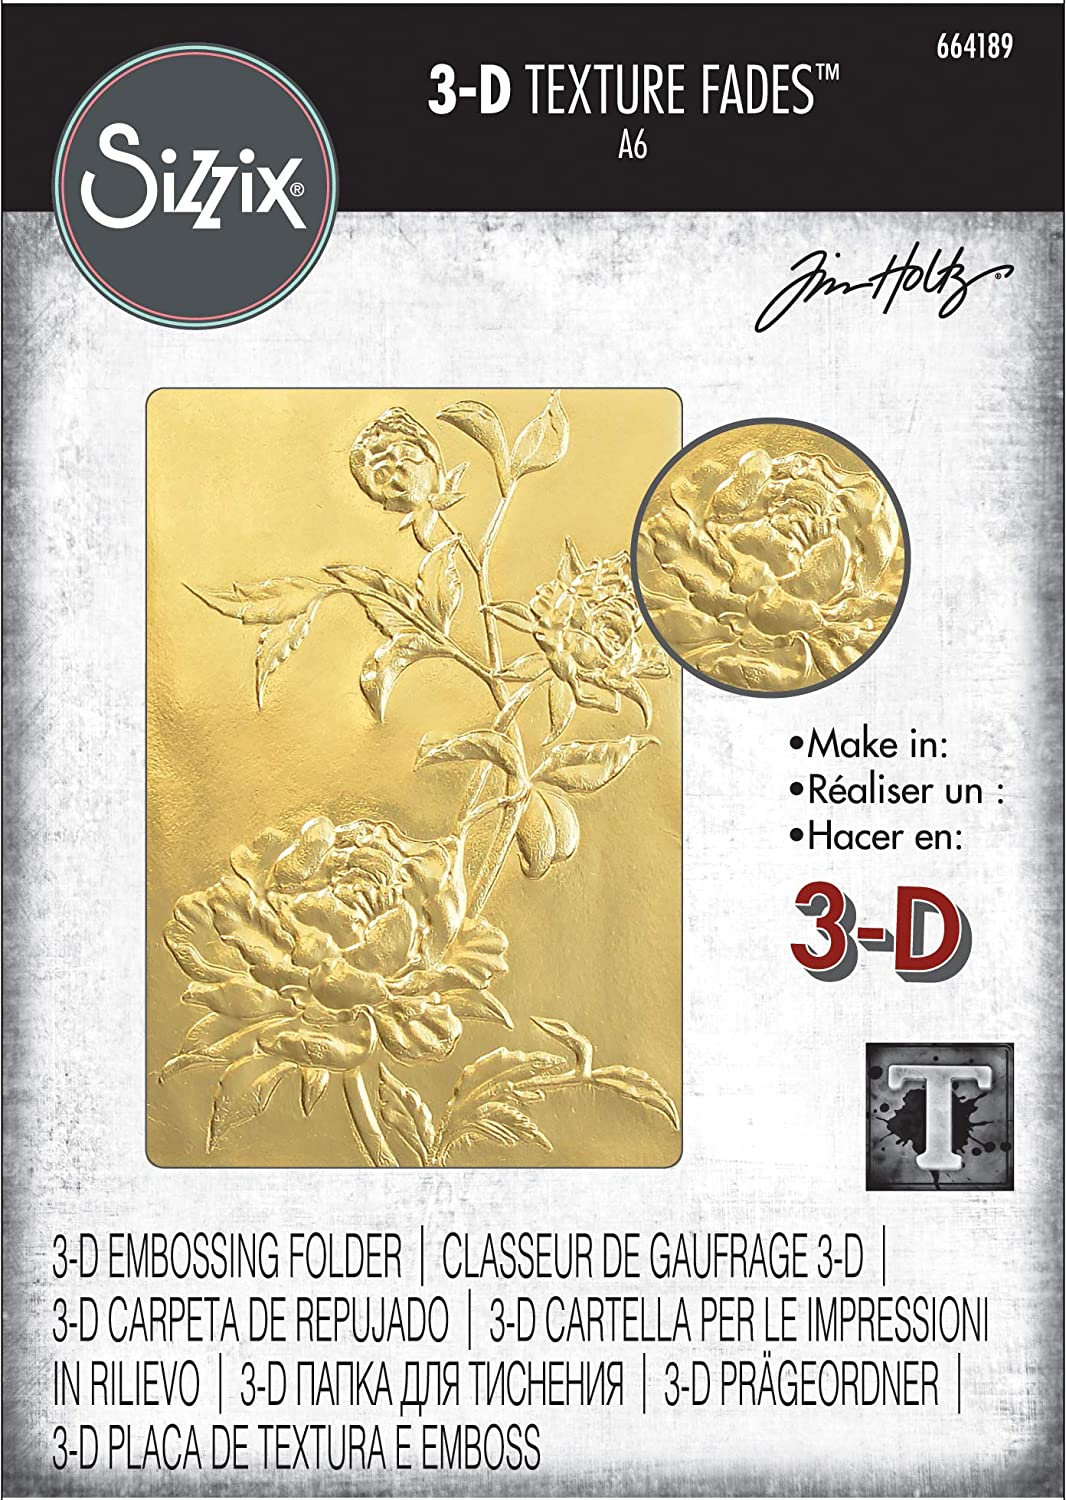 Sizzix 3-D Texture Fades Embossing Folder 664189 Roses by Tim Holtz Multicolor